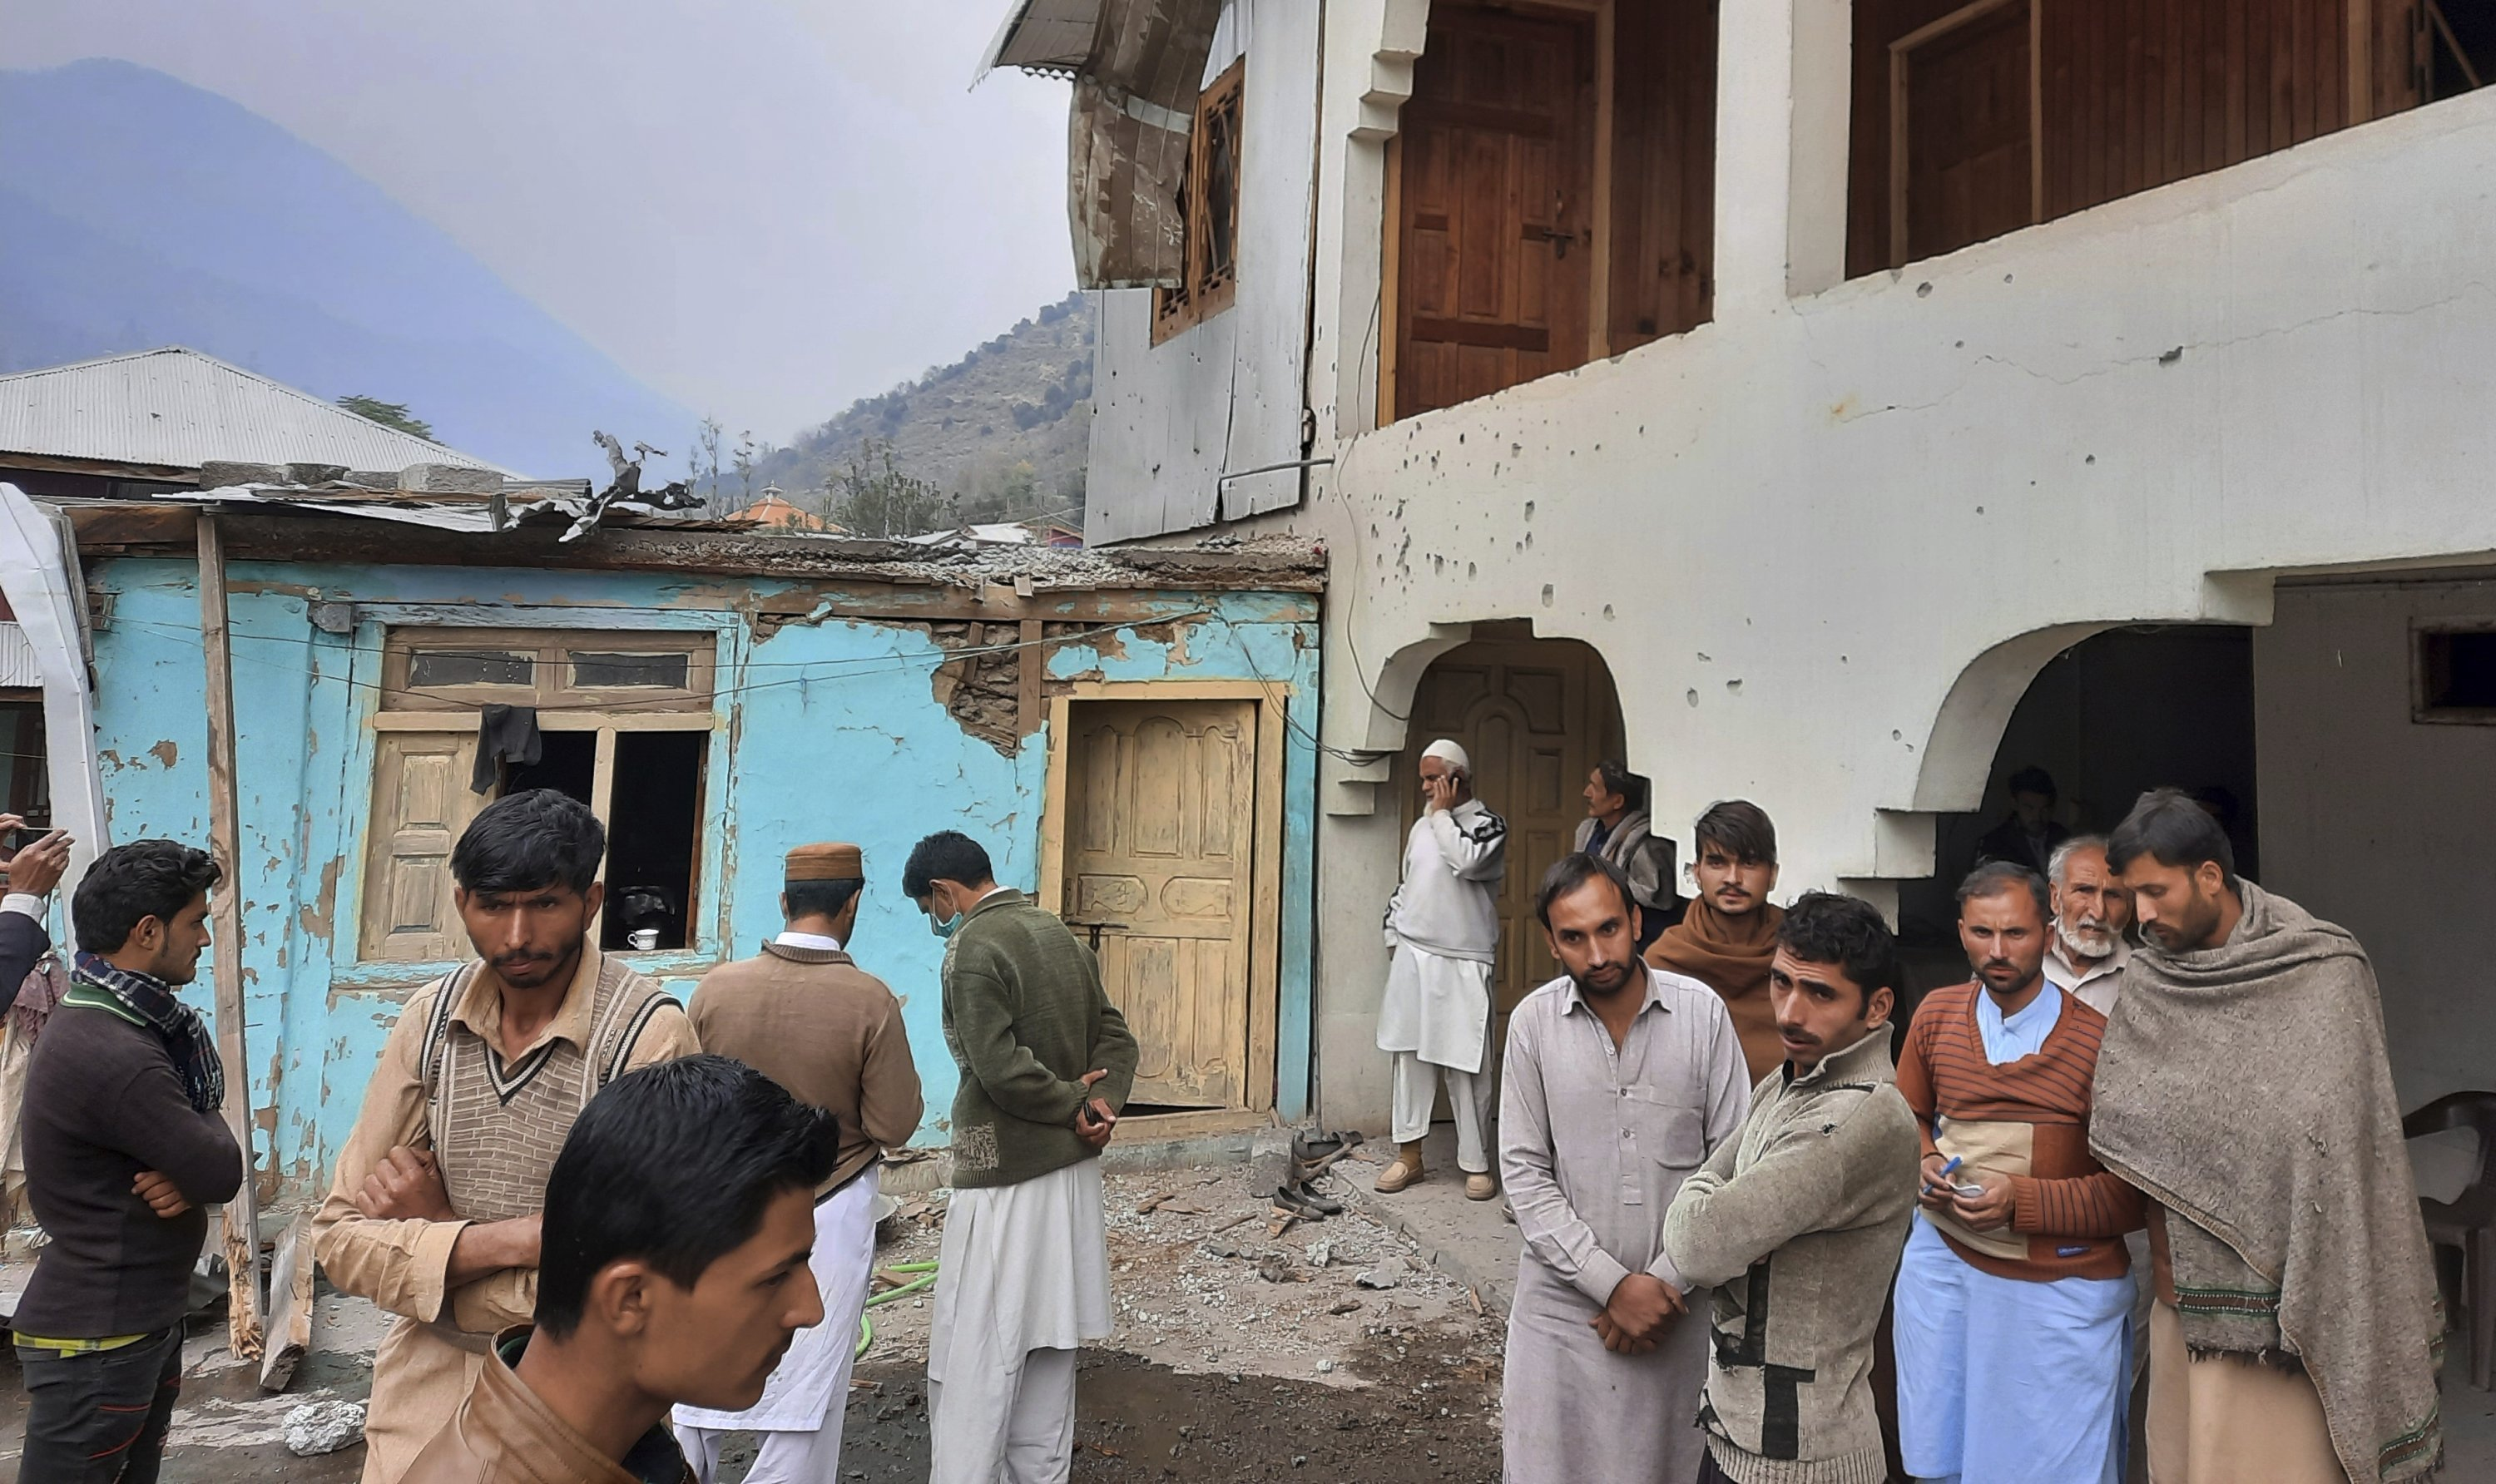 Local residents gather in a house damaged by shelling by Indian forces at a village in Neelum Valley, situated at the Line of Control (LoC) in Pakistan-administered Kashmir, Nov. 13, 2020. (AP Photo)